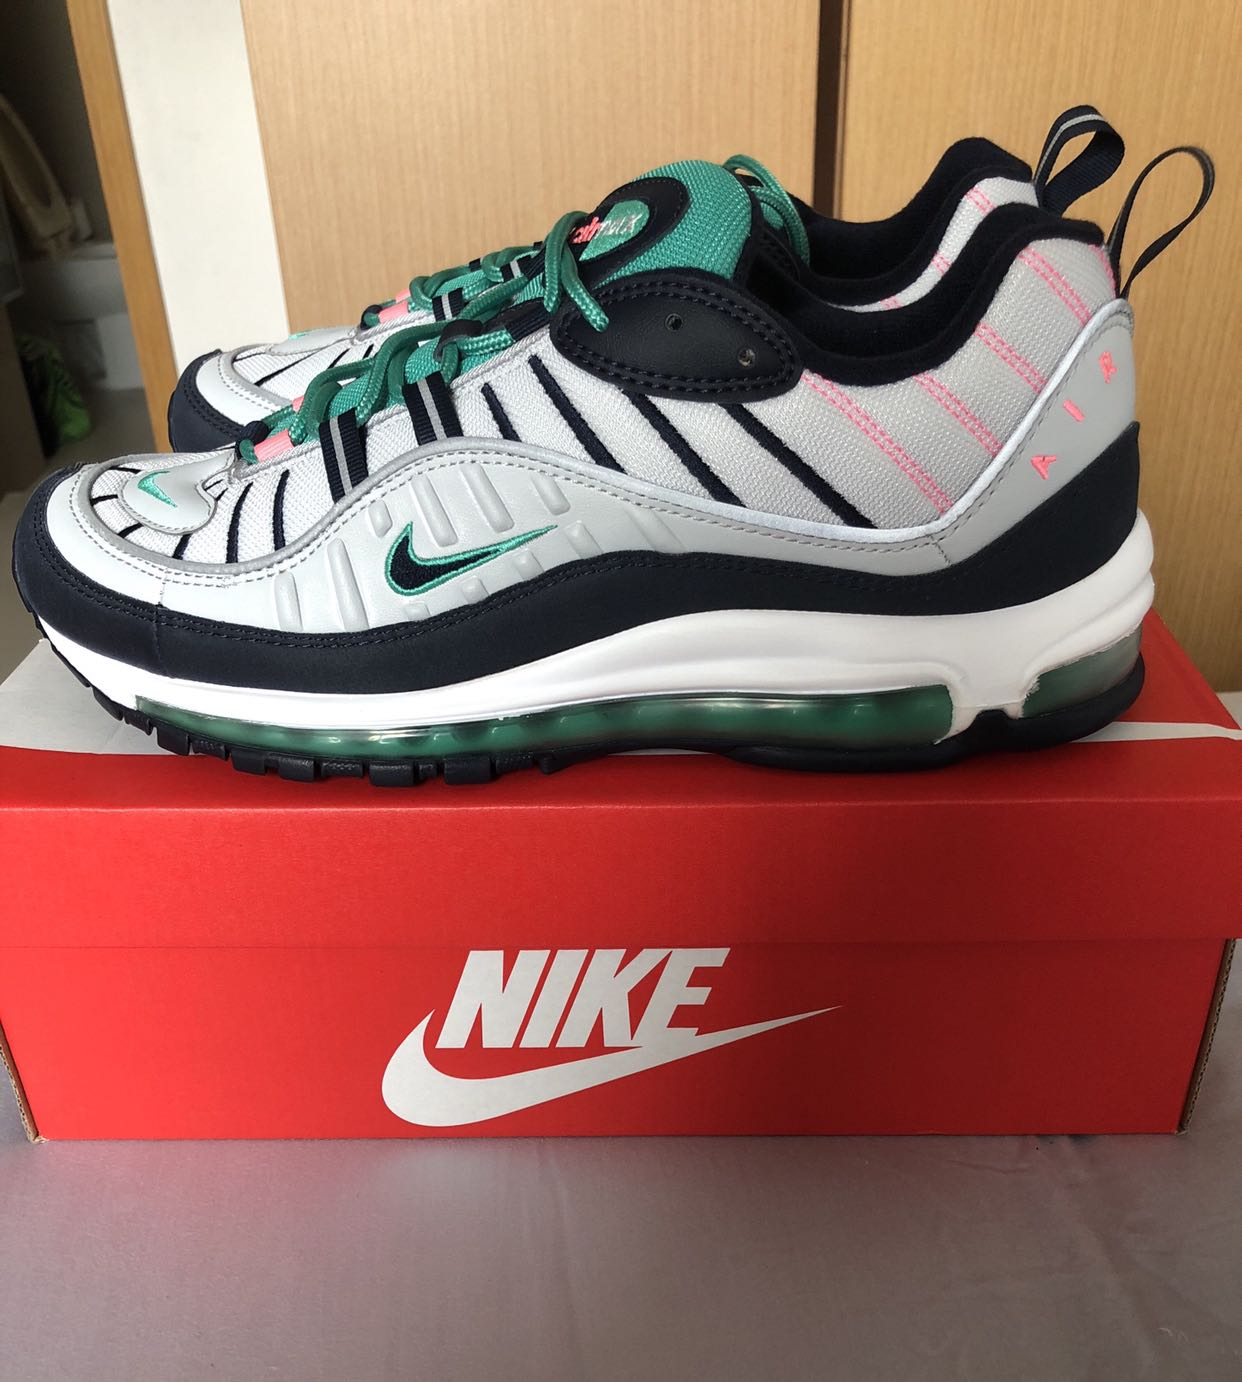 eef6b383a6 Nike Air Max 98 tidal waves miami south beach, Men's Fashion, Footwear,  Sneakers on Carousell